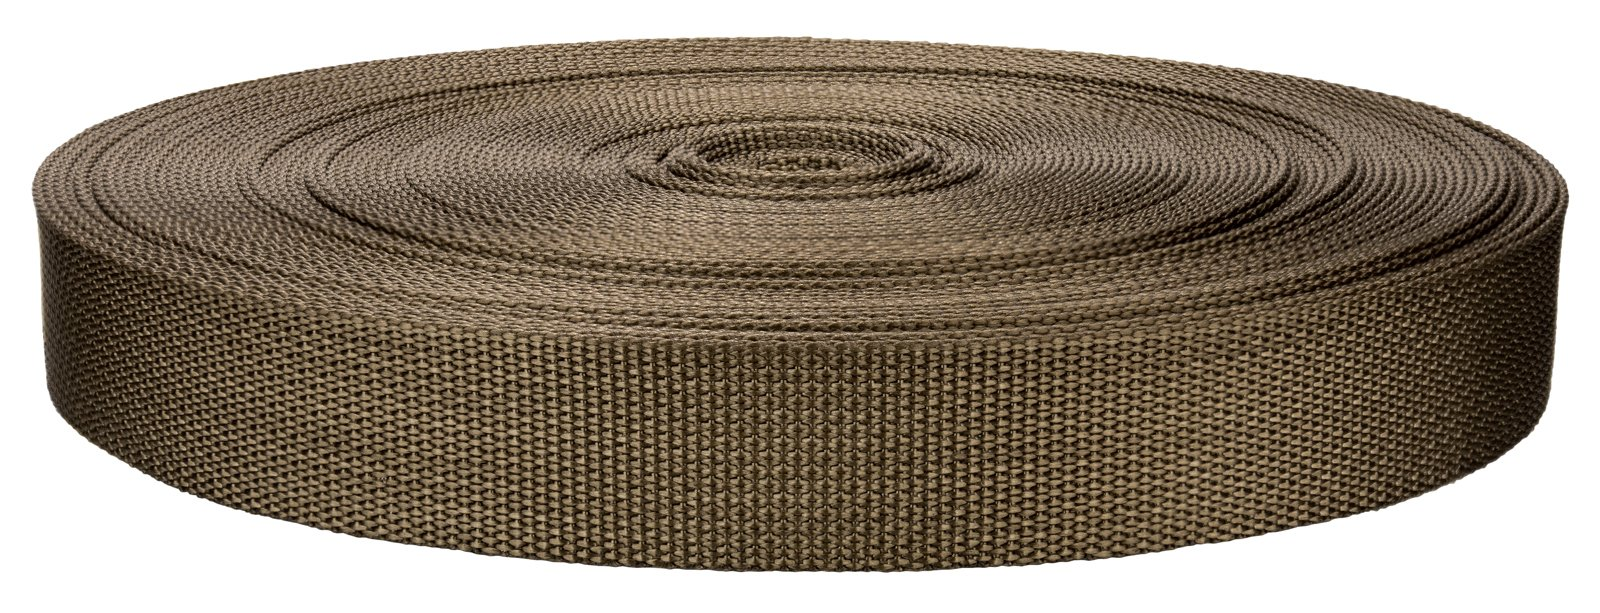 1 Inch Marpate Coyote Tan Lite Weight Nylon Webbing Closeout - 10 yards